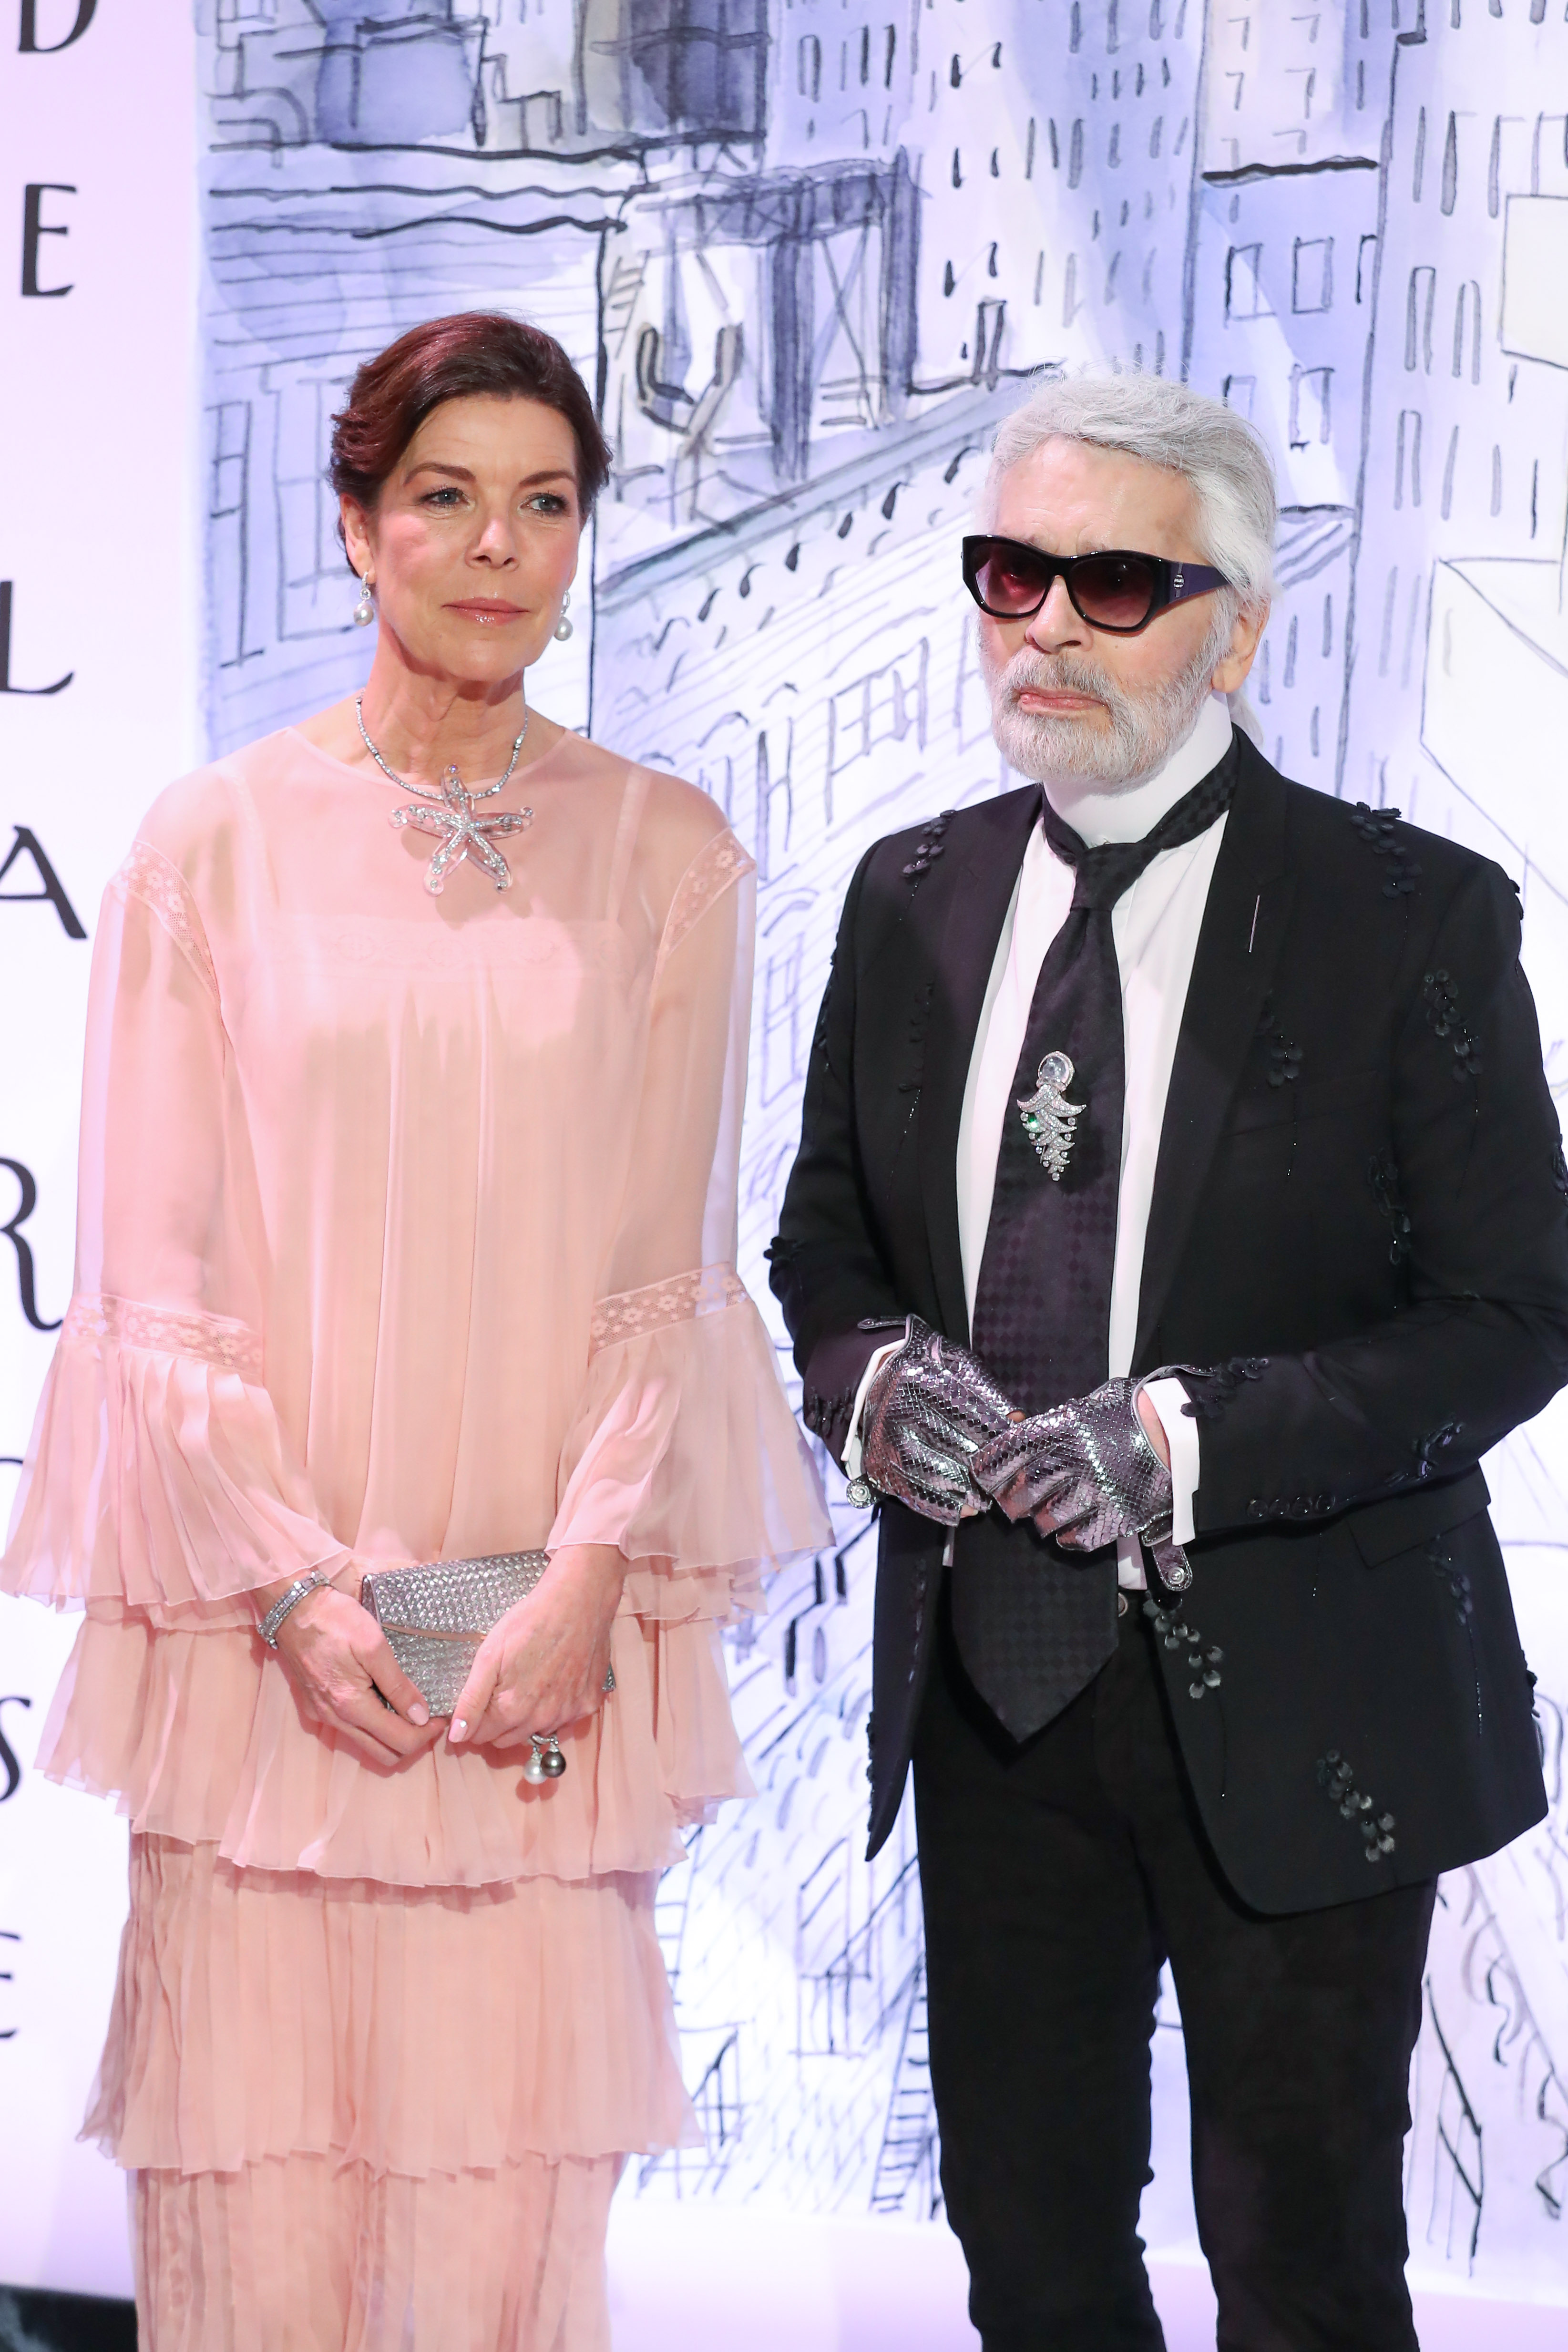 Monaco Rose Ball 2018 around the theme of Manhattan, at the Monte-Carlo Sporting Club, in Monaco.  <P> Pictured: Princess Caroline of Hanover and Karl Lagerfeld <B>Ref: SPL1675305  250318  </B><BR/> Picture by: Splash News<BR/> </P><P> <B>Splash News and Pictures</B><BR/> Los Angeles:310-821-2666<BR/> New York:212-619-2666<BR/> London:870-934-2666<BR/> <span id=